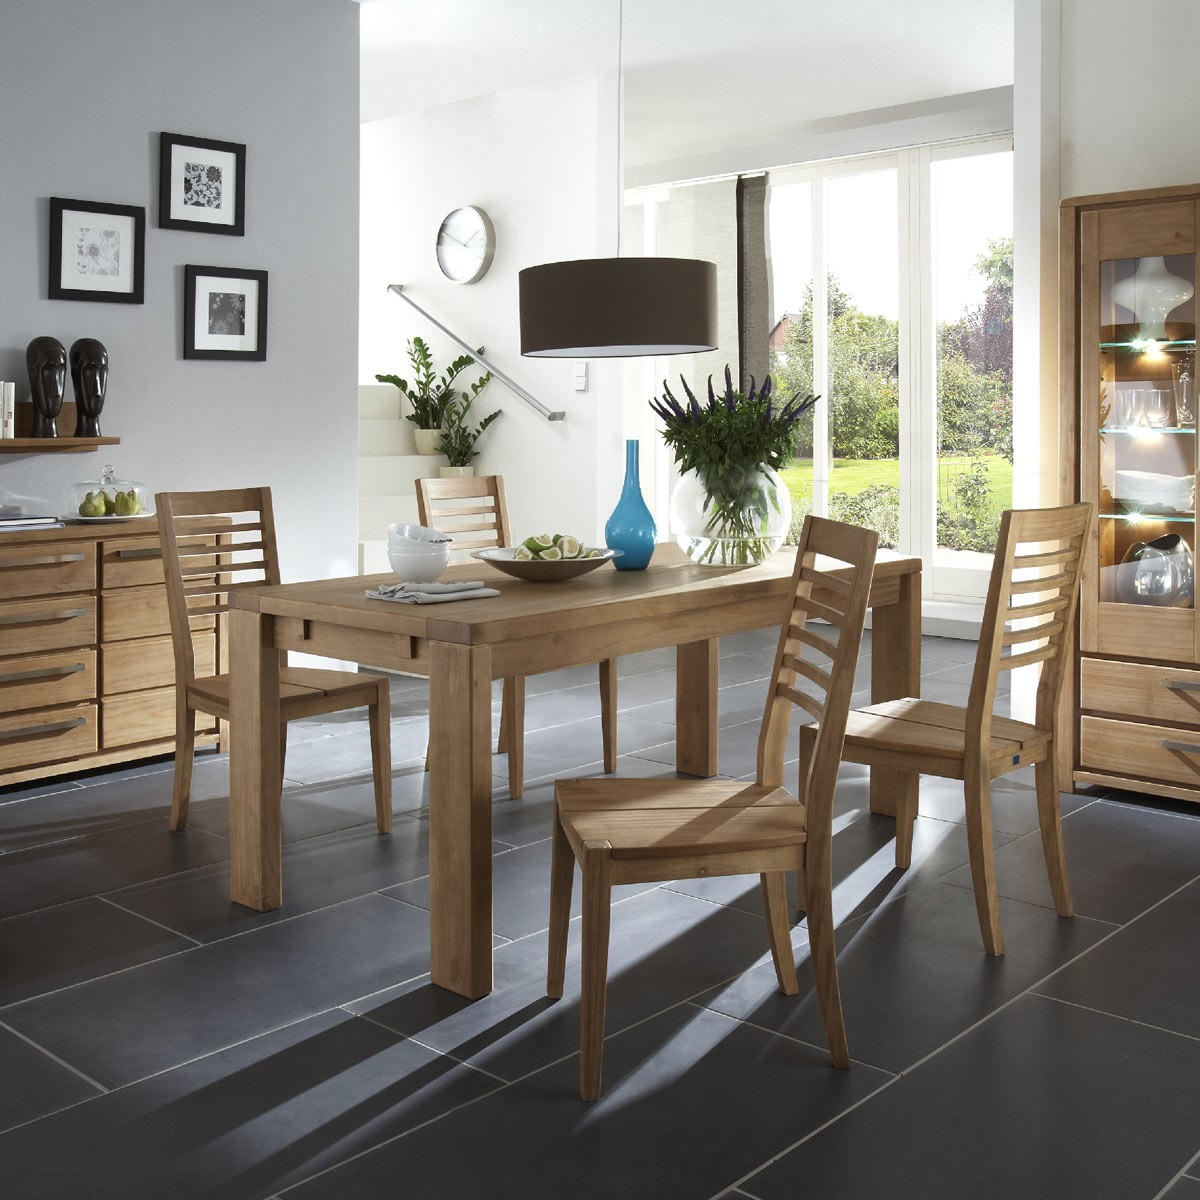 essgruppe nyborg 5 teilig mit tisch 180x90 und holzstuhl. Black Bedroom Furniture Sets. Home Design Ideas